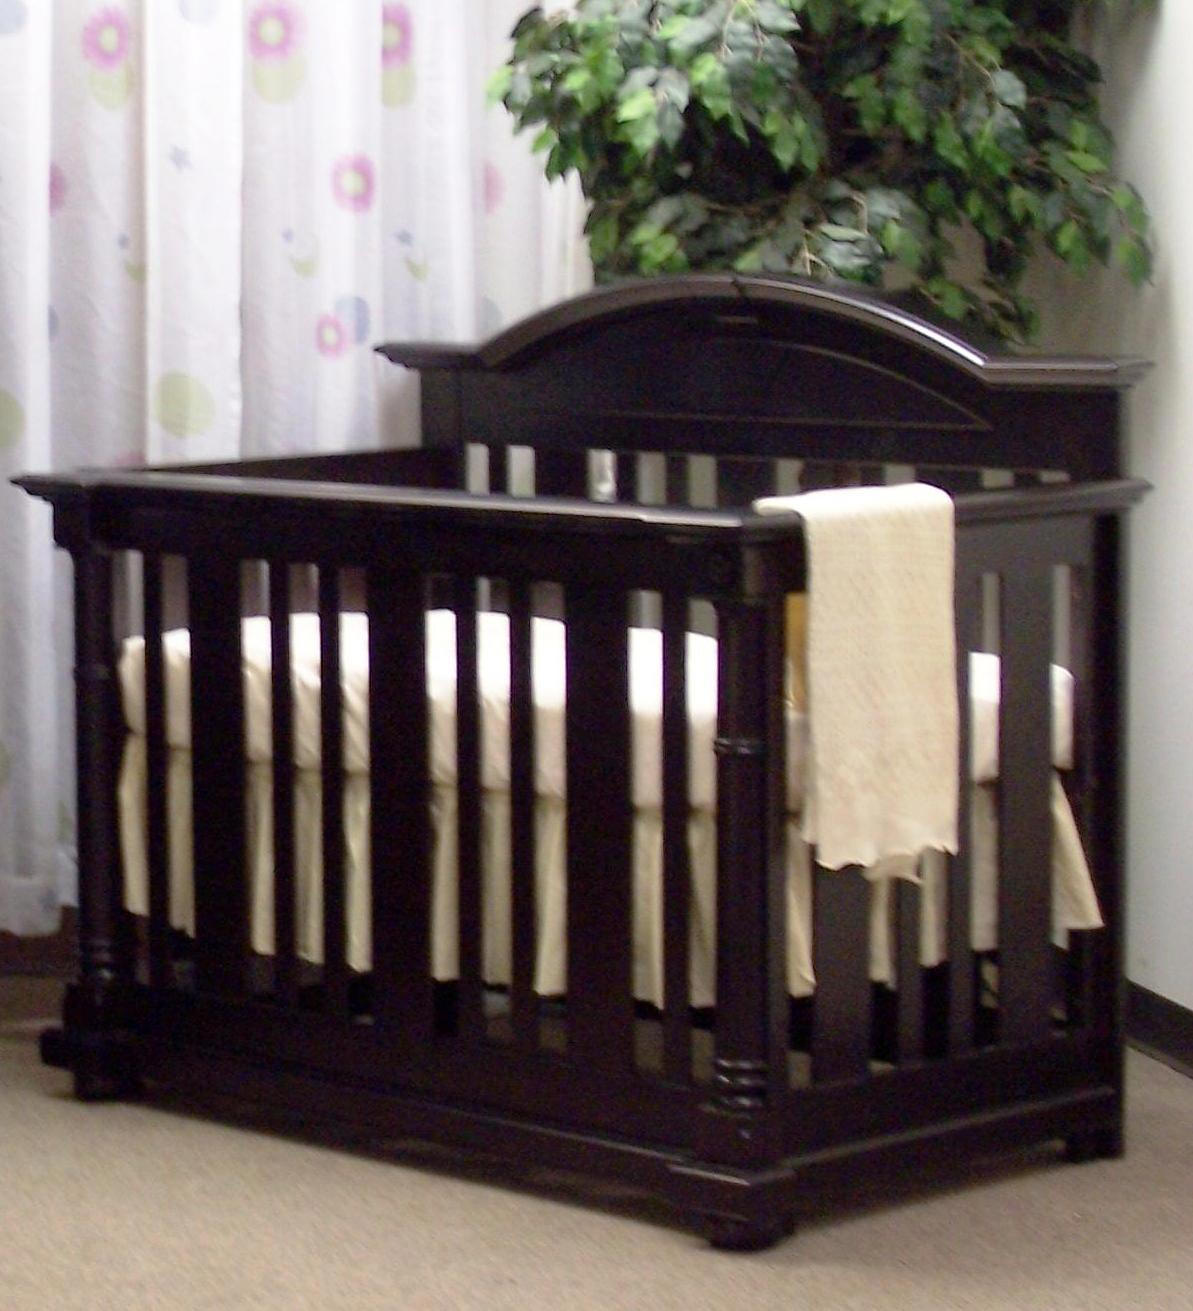 What is the best crib for baby - Baby Crib Baby In Crib Crib For Baby Cute Baby Relaxing In Crib Best